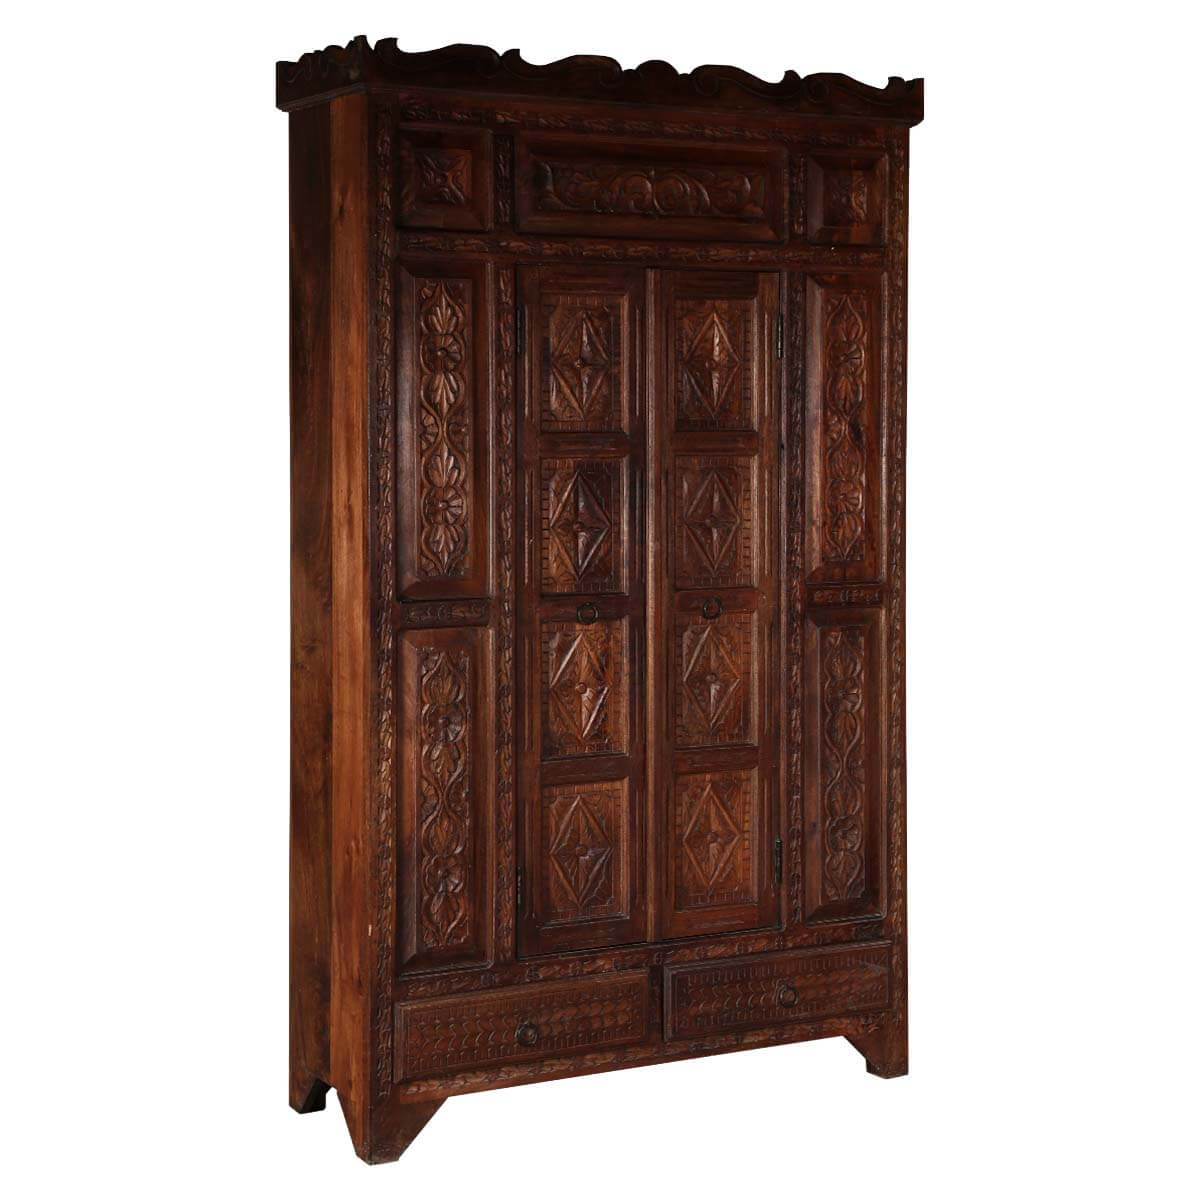 Royal Tudor Carved Wood Large Armoire Cabinet With Shelves & Drawers